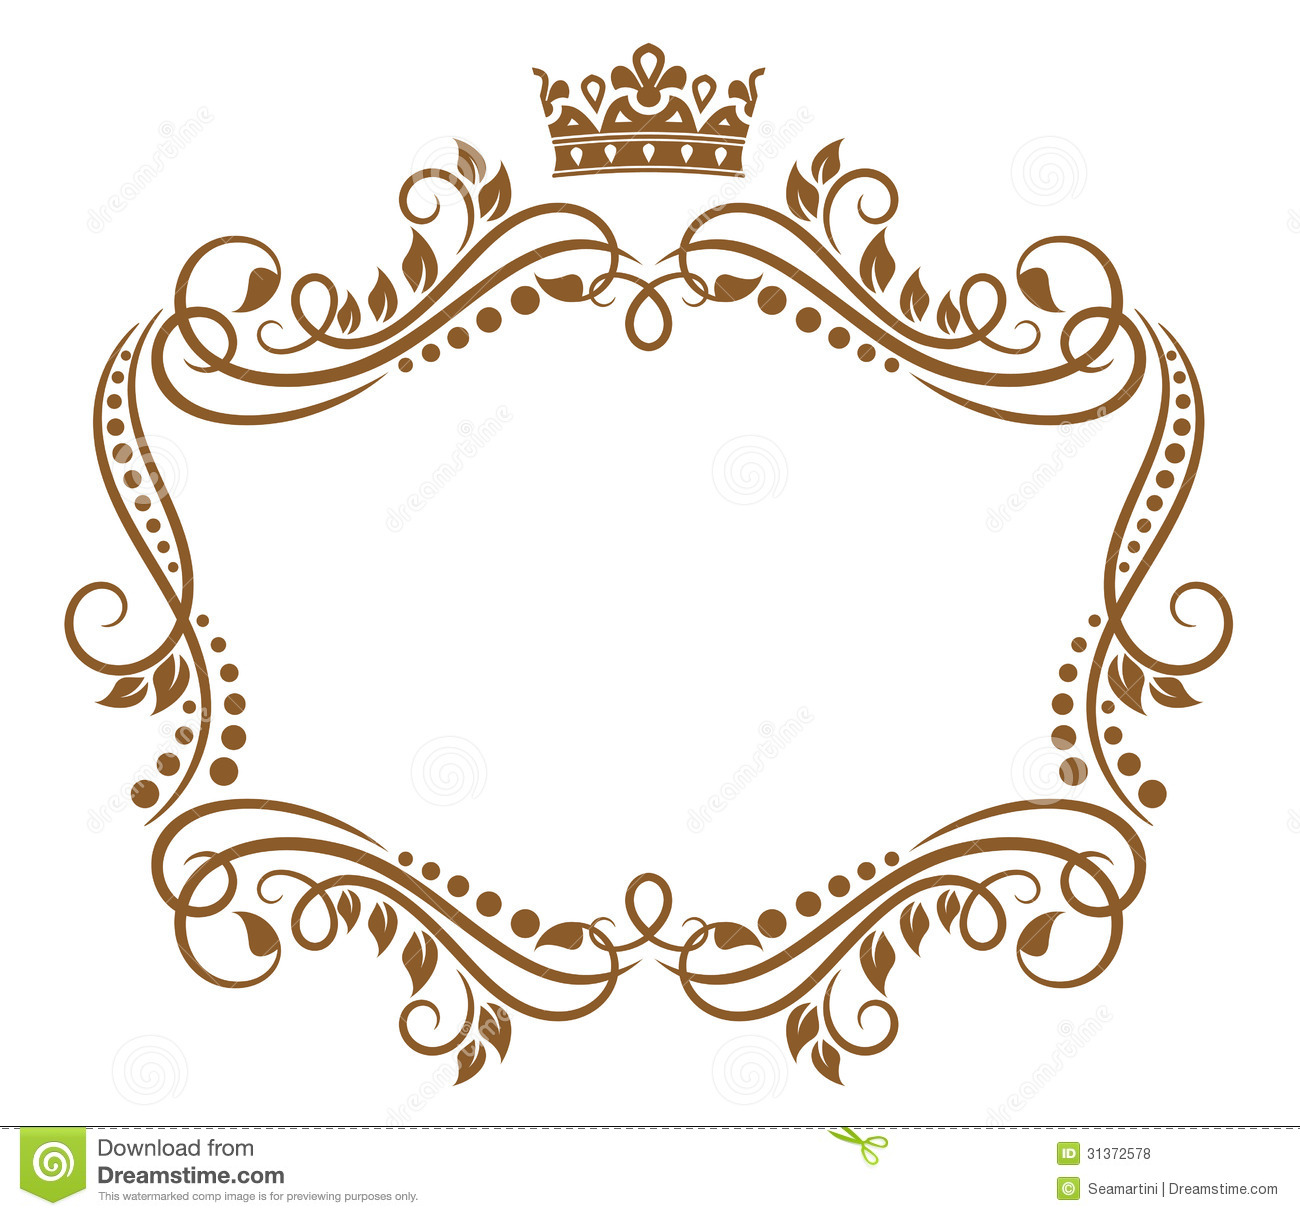 Silhouette Royal Crown Vintage Clip Art Prawny Clipart Cartoons